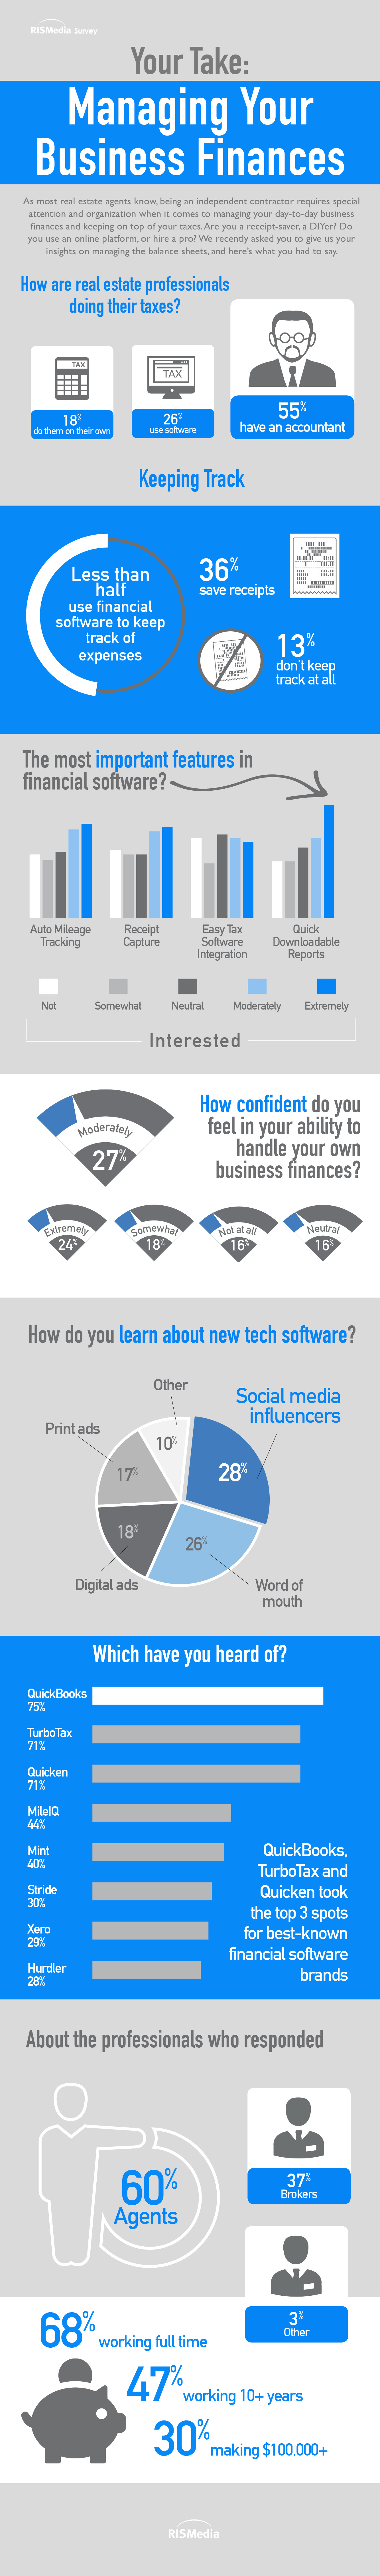 Business_Mgmt_Survey